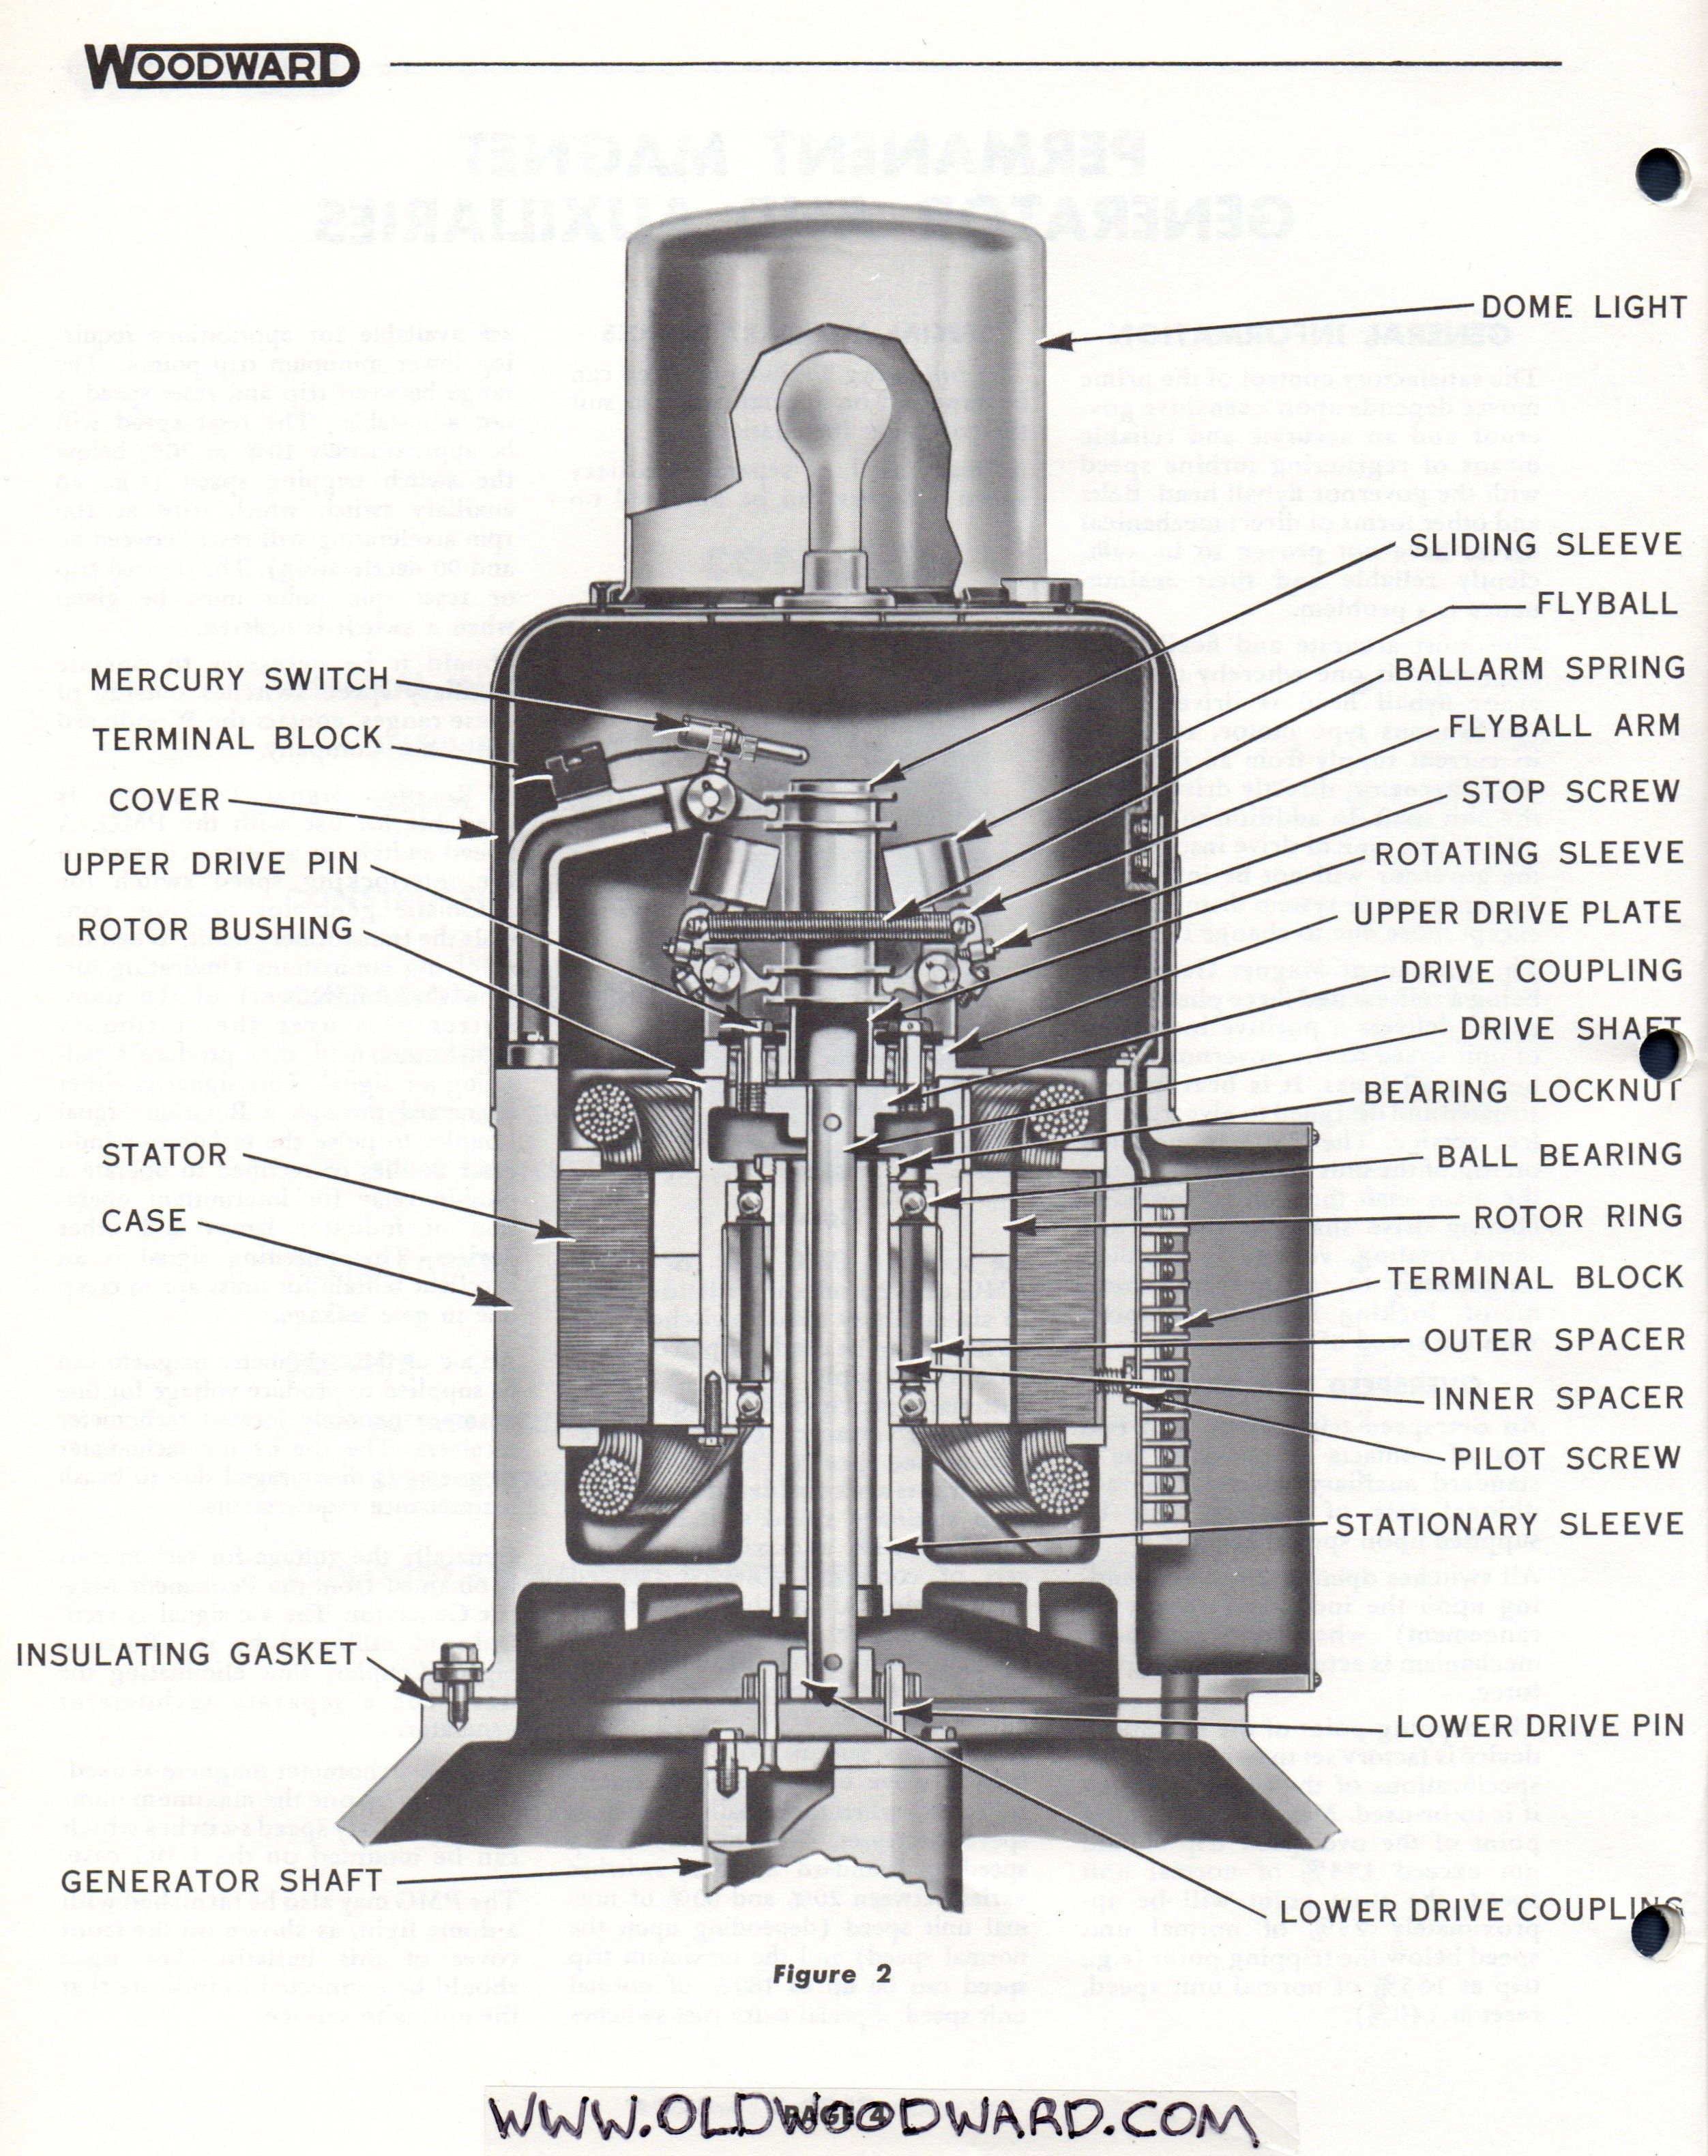 hight resolution of woodward governor company s permanent magnet generator unit for large hydro electric turbine units from woodward manual 11002k page 4